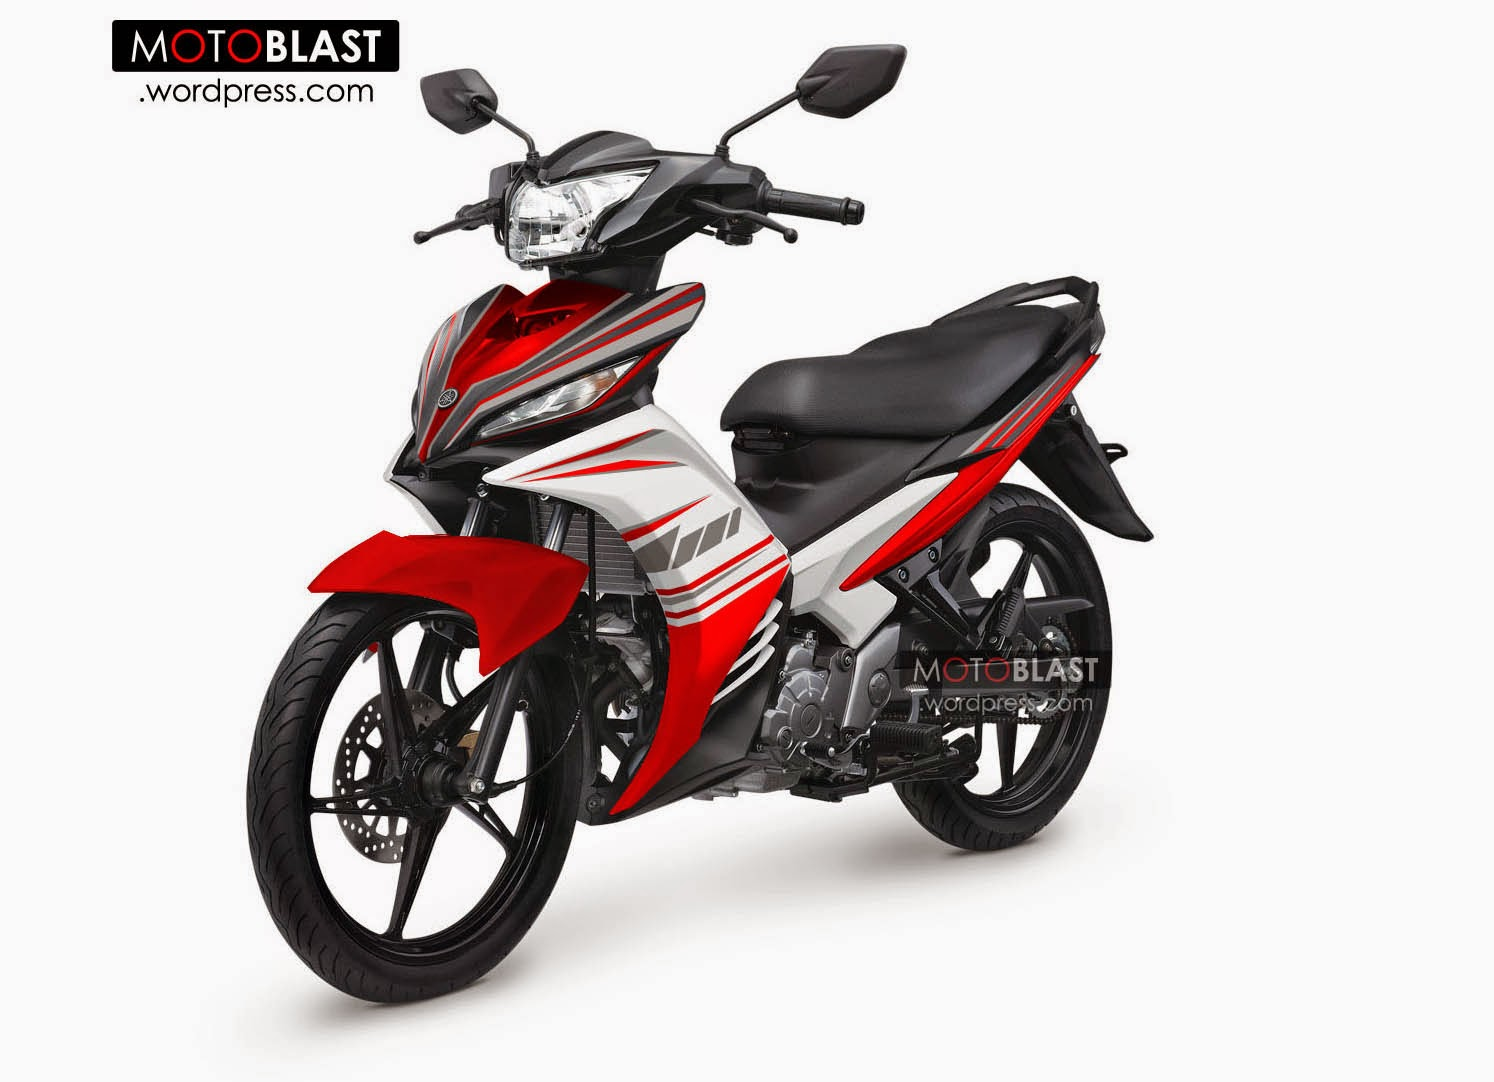 Jupiter Mx Modifikasi Warna Merah